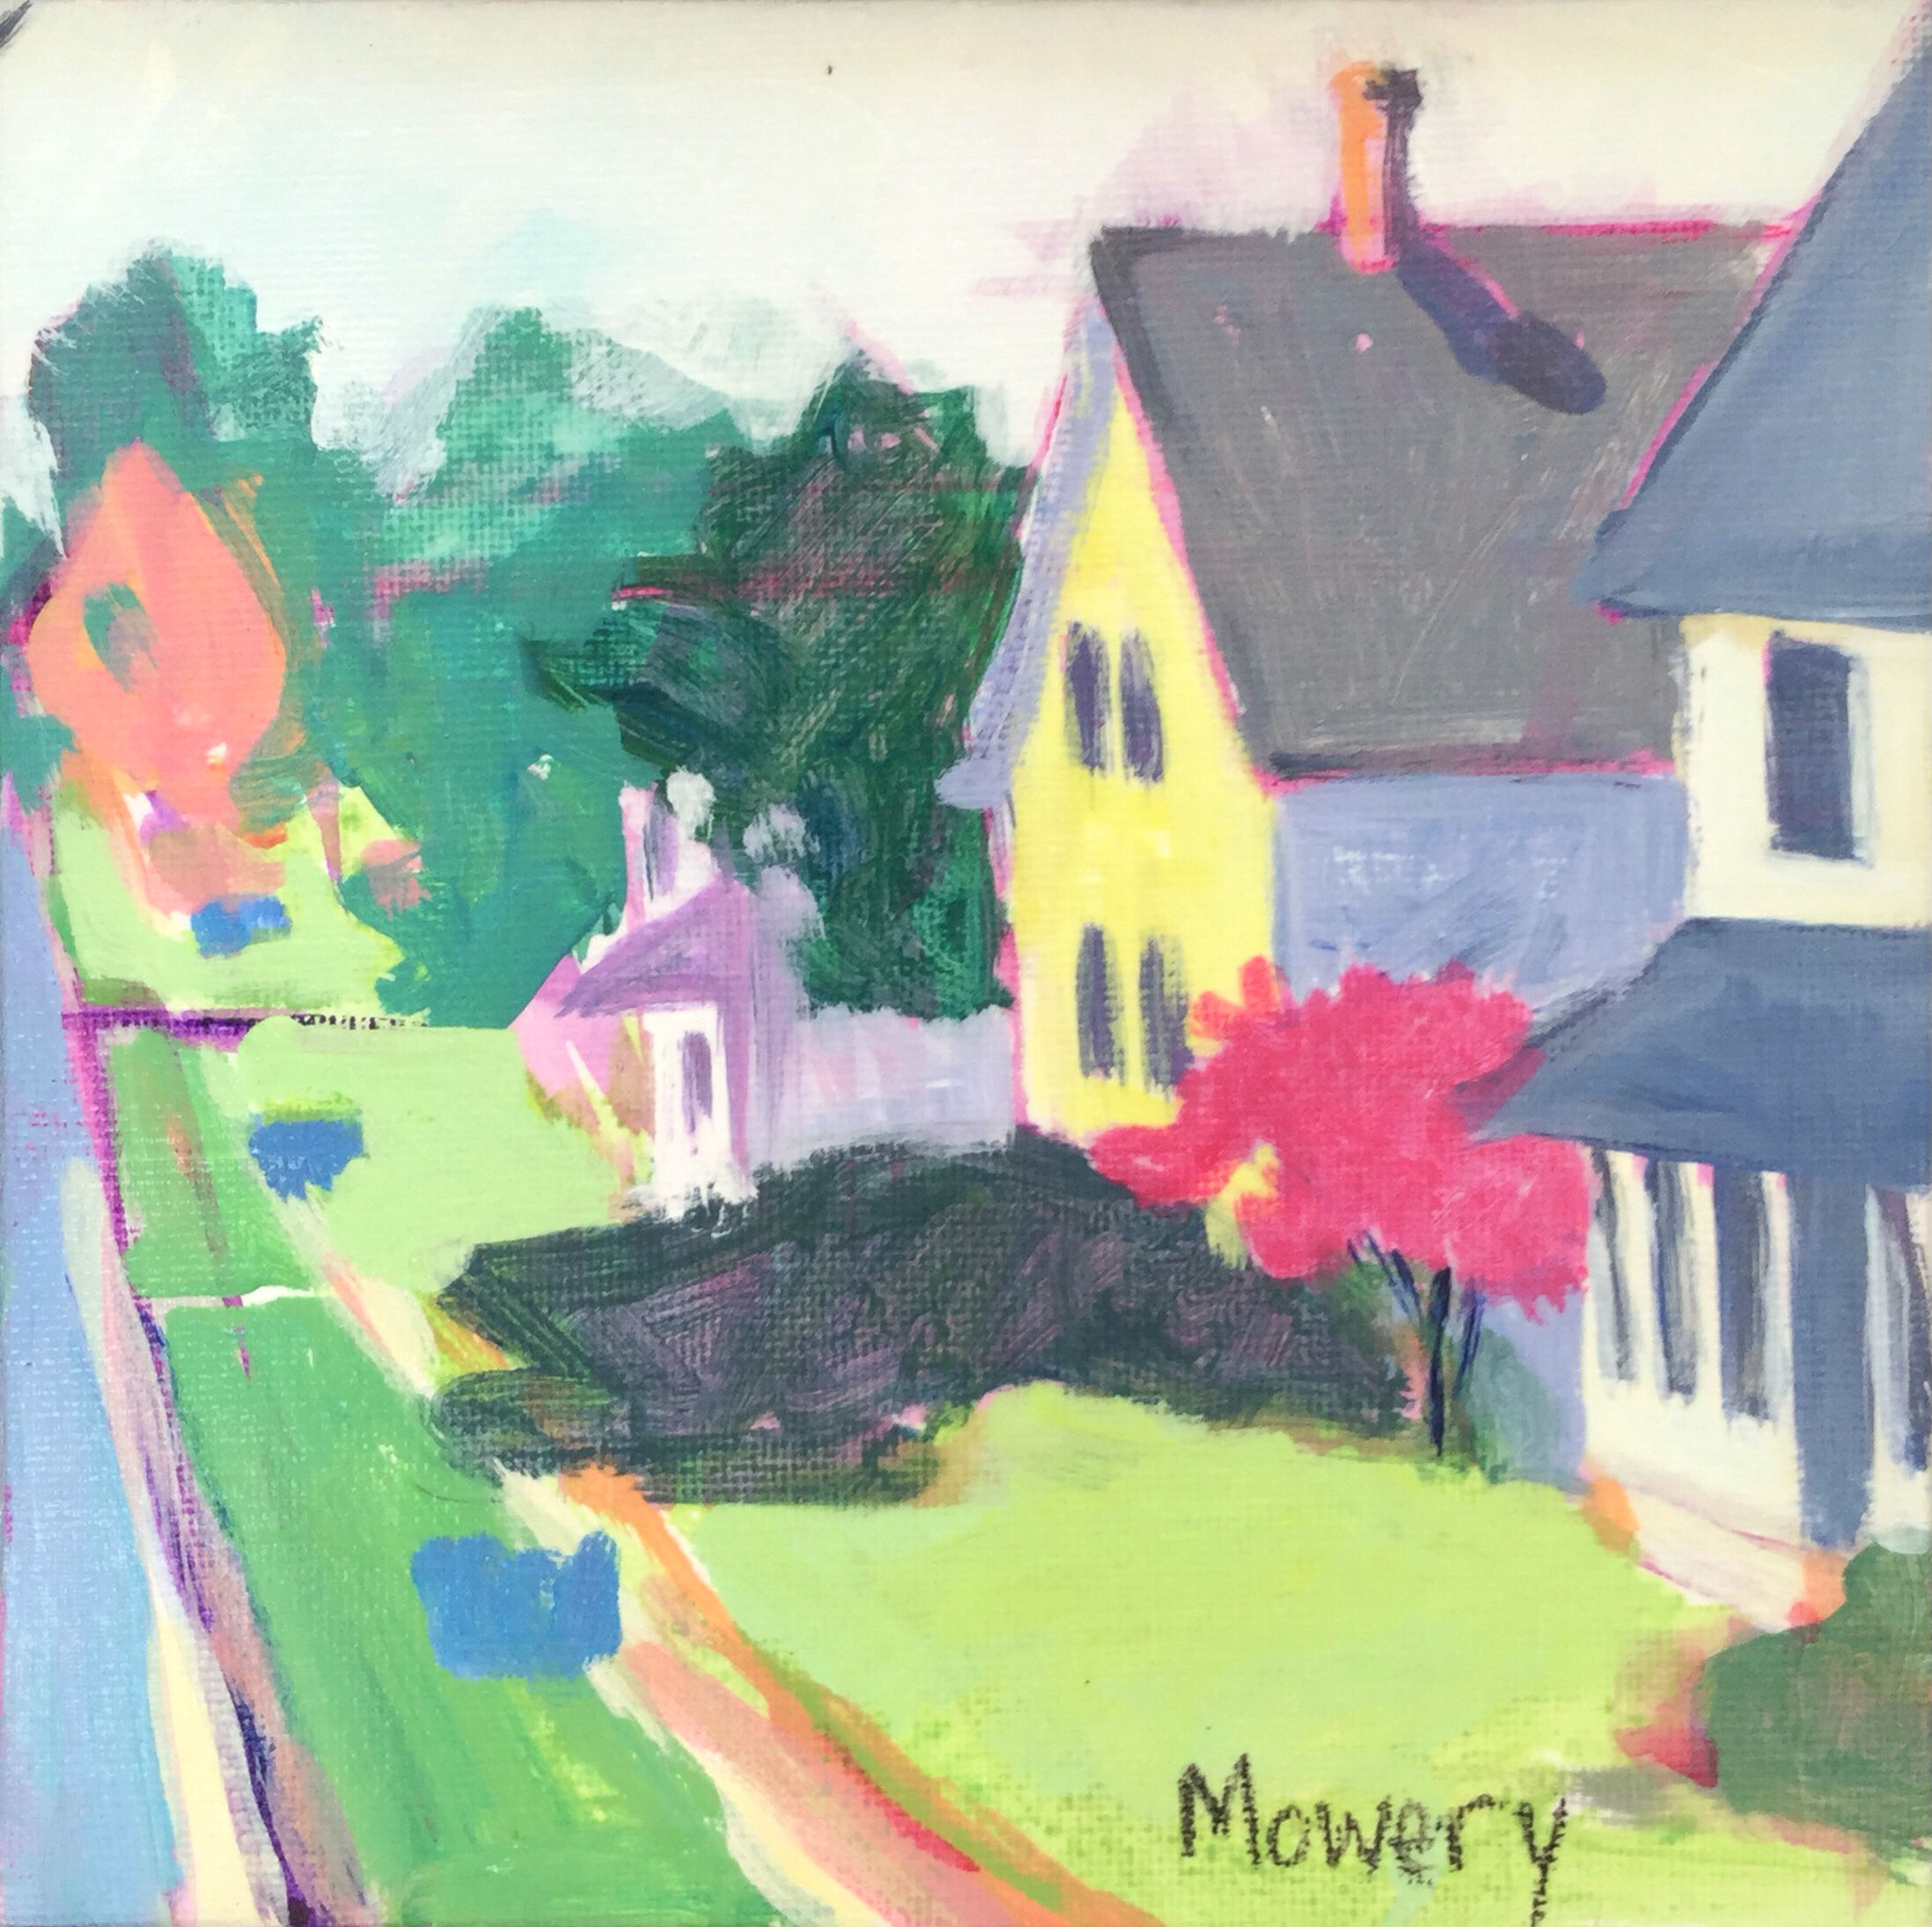 This is an acrylic painting of a neighborhood of colorful houses with blue recycling bins out for pickup by artist Barb Mowery.